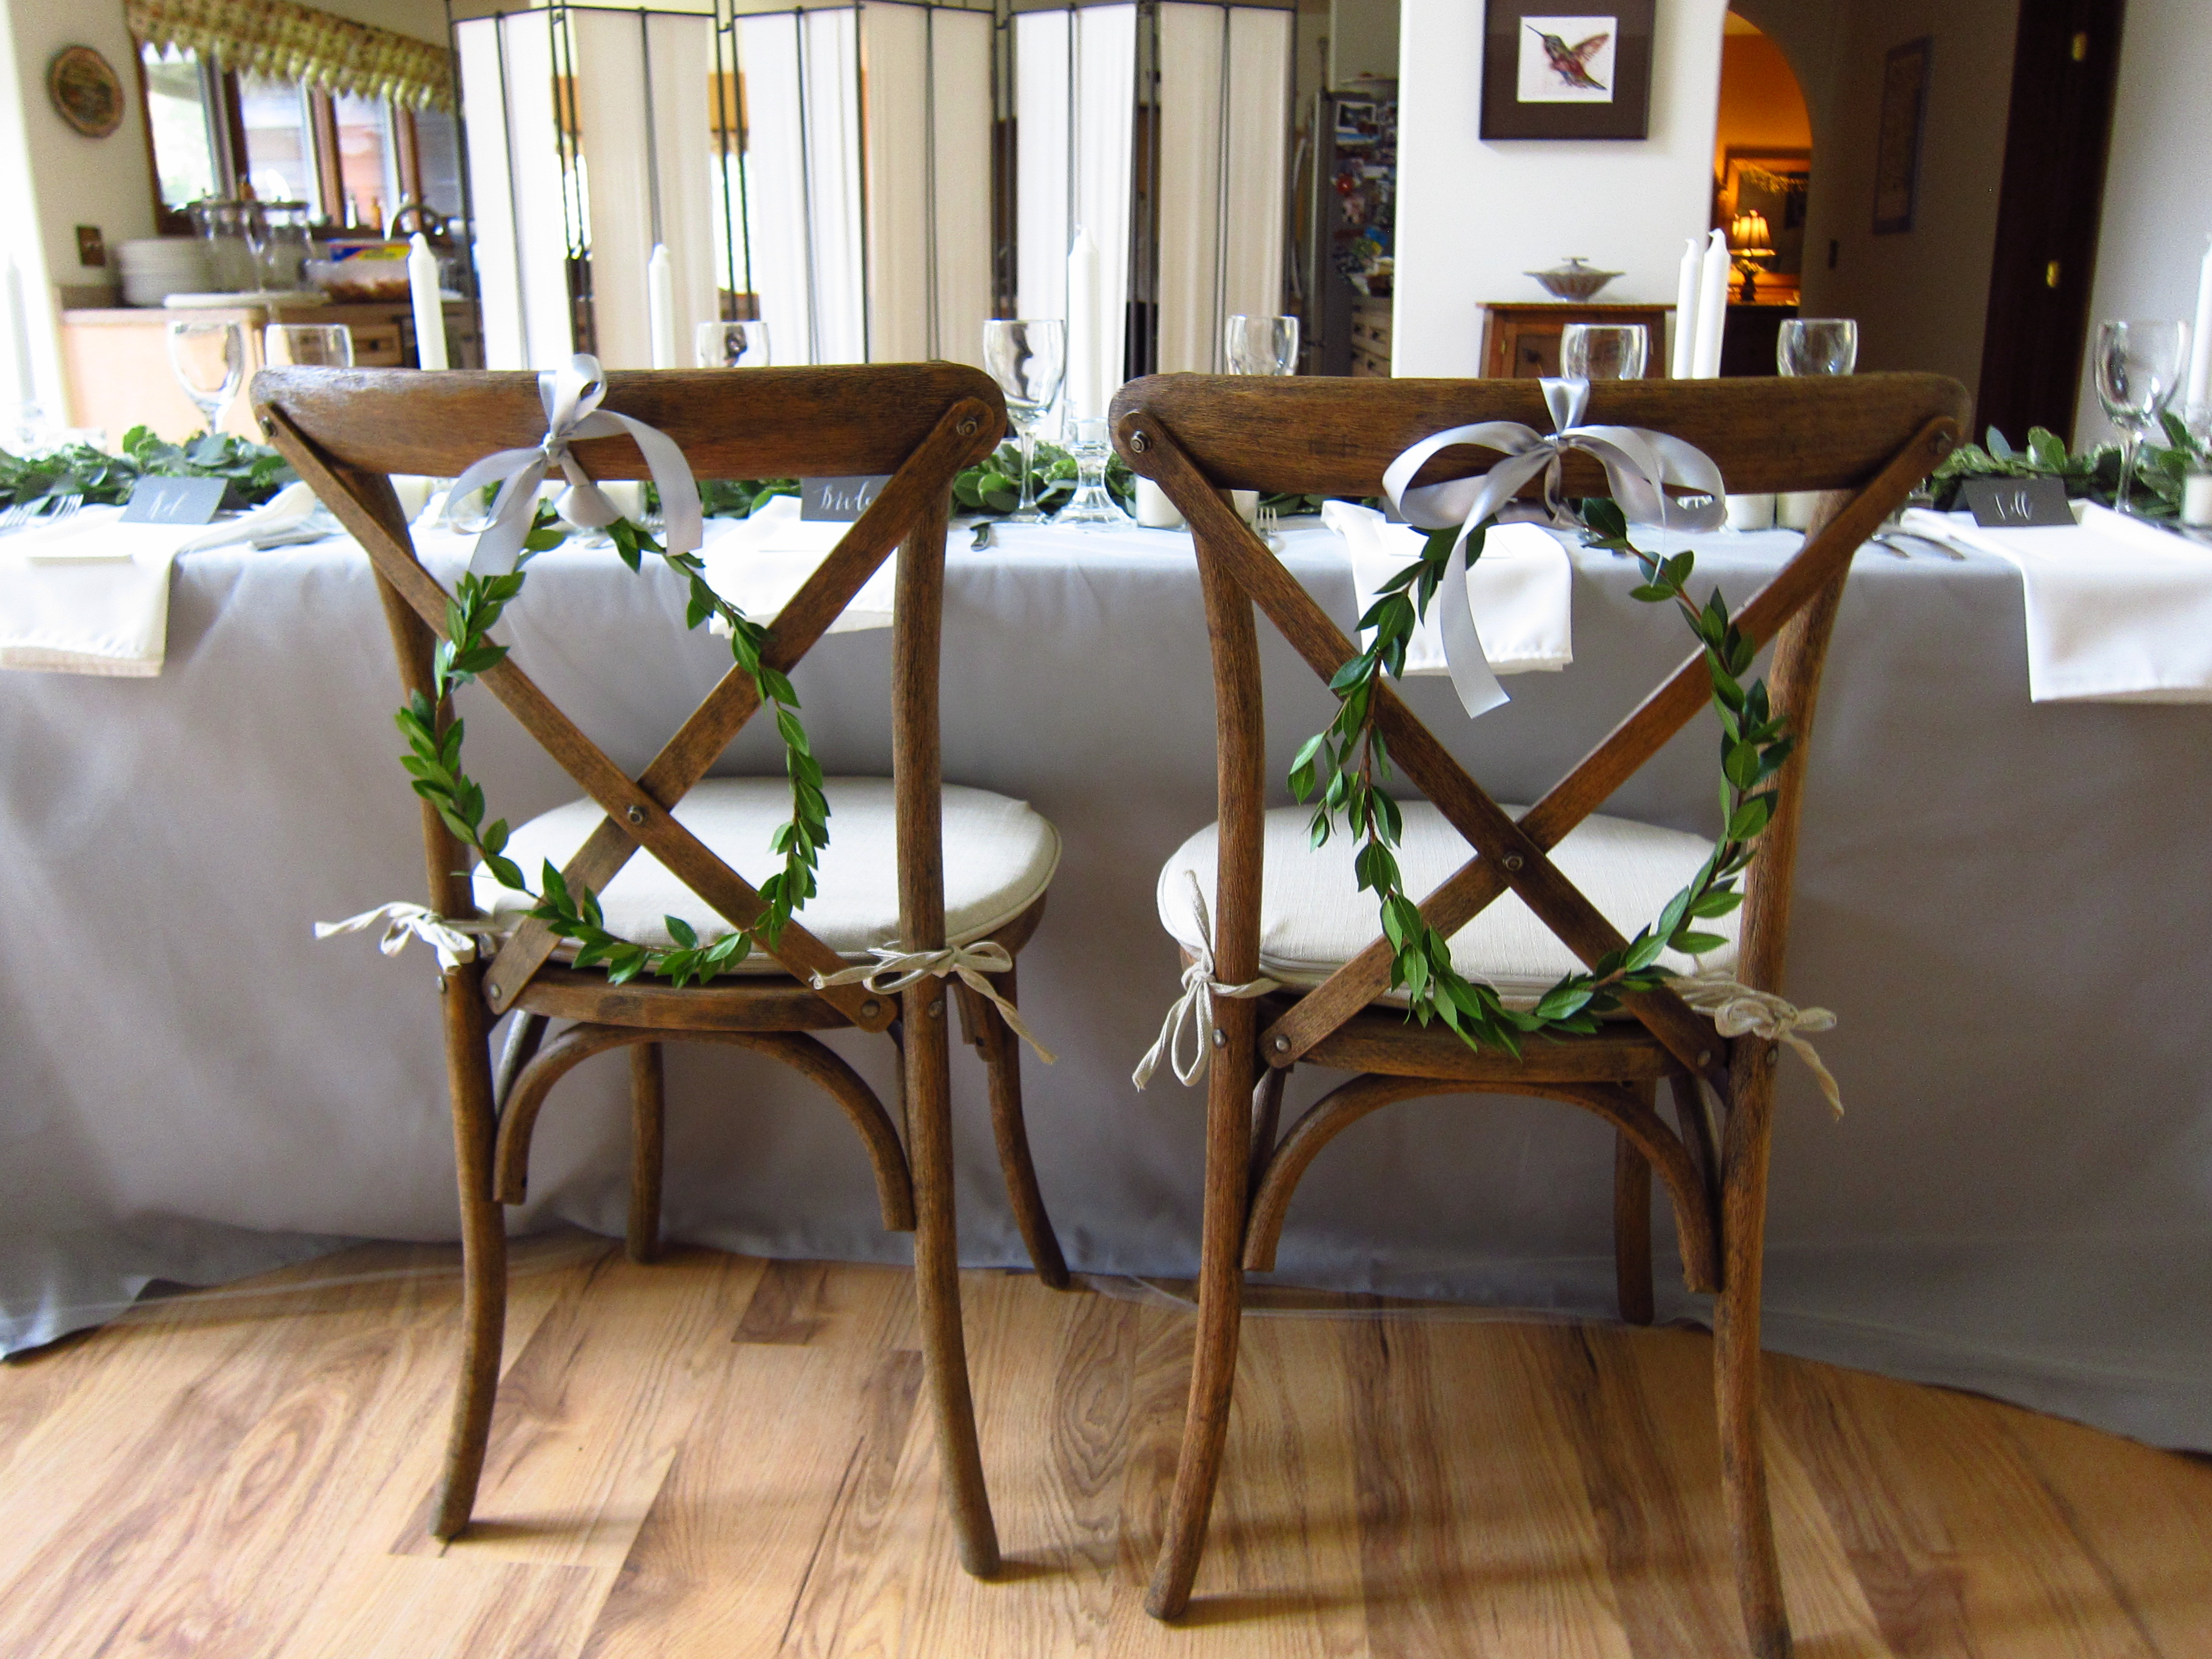 Delicate myrtle wreaths for bride and groom's chairs | designed by Natasha Price of Paper Peony